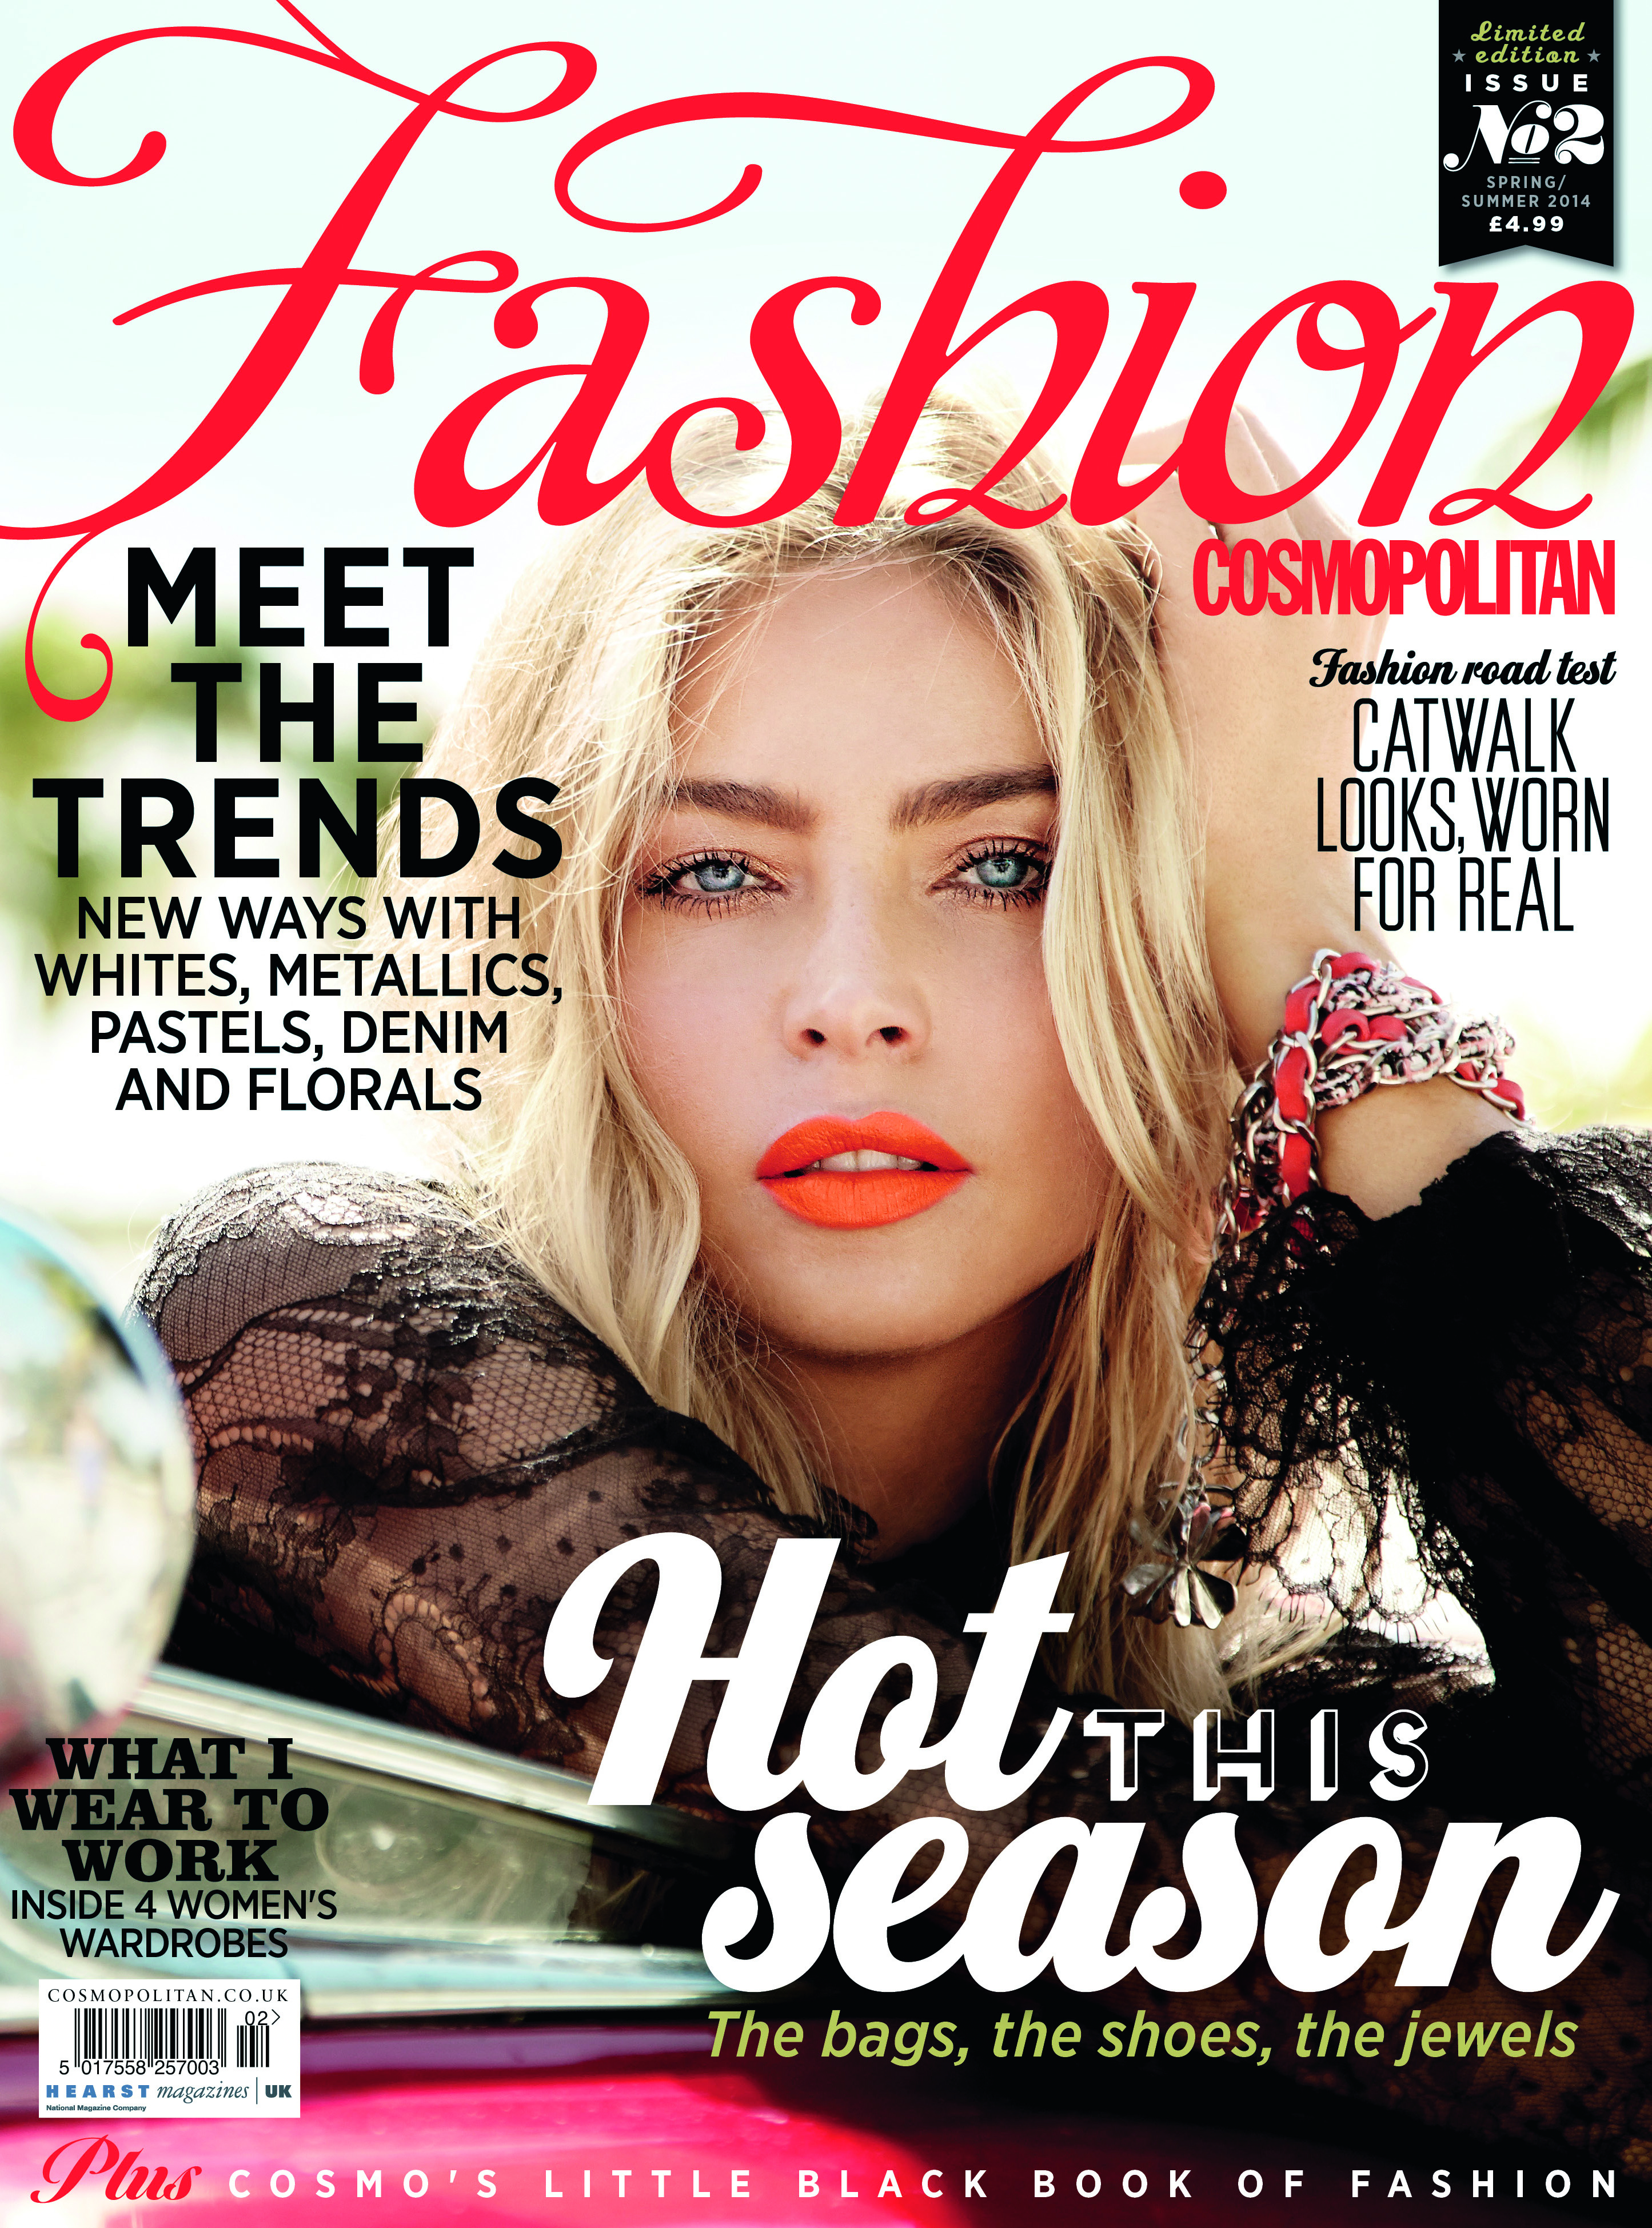 Key fashion trends 2017 - Cosmopolitan Launches Fashfest The Uk S First Festival